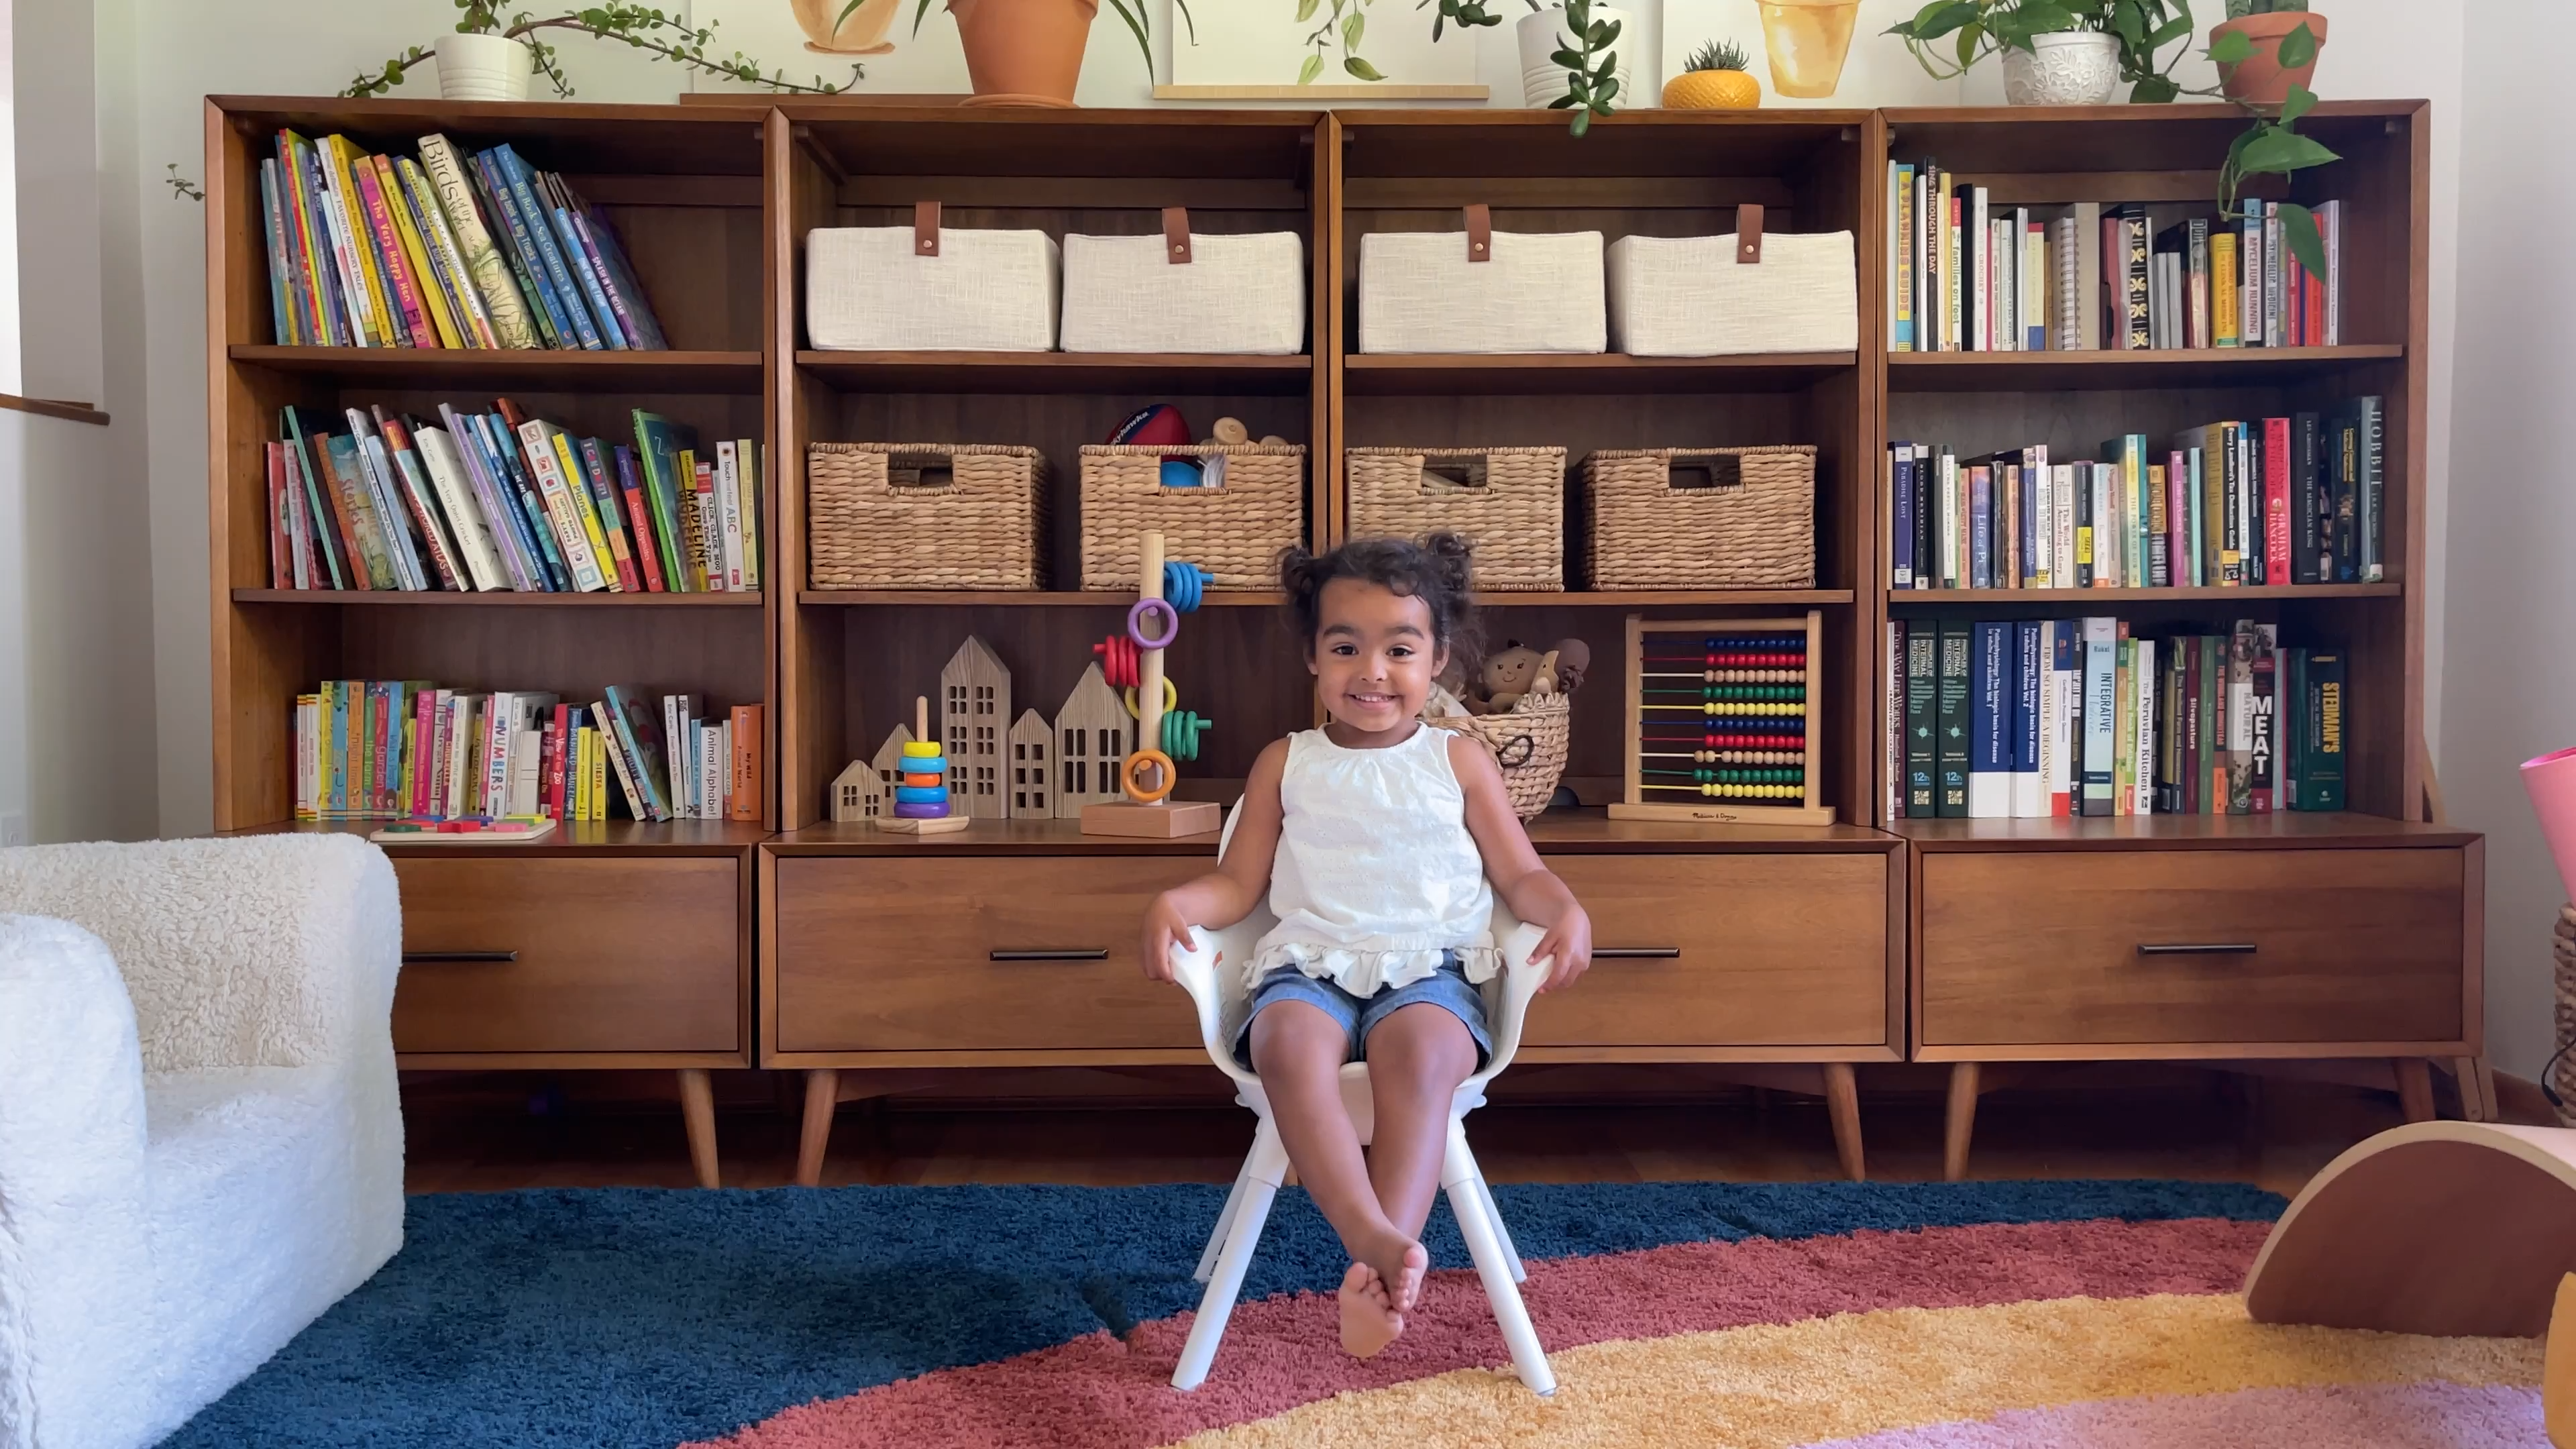 IMAGE OR GIF OF TODDLER CHAIR